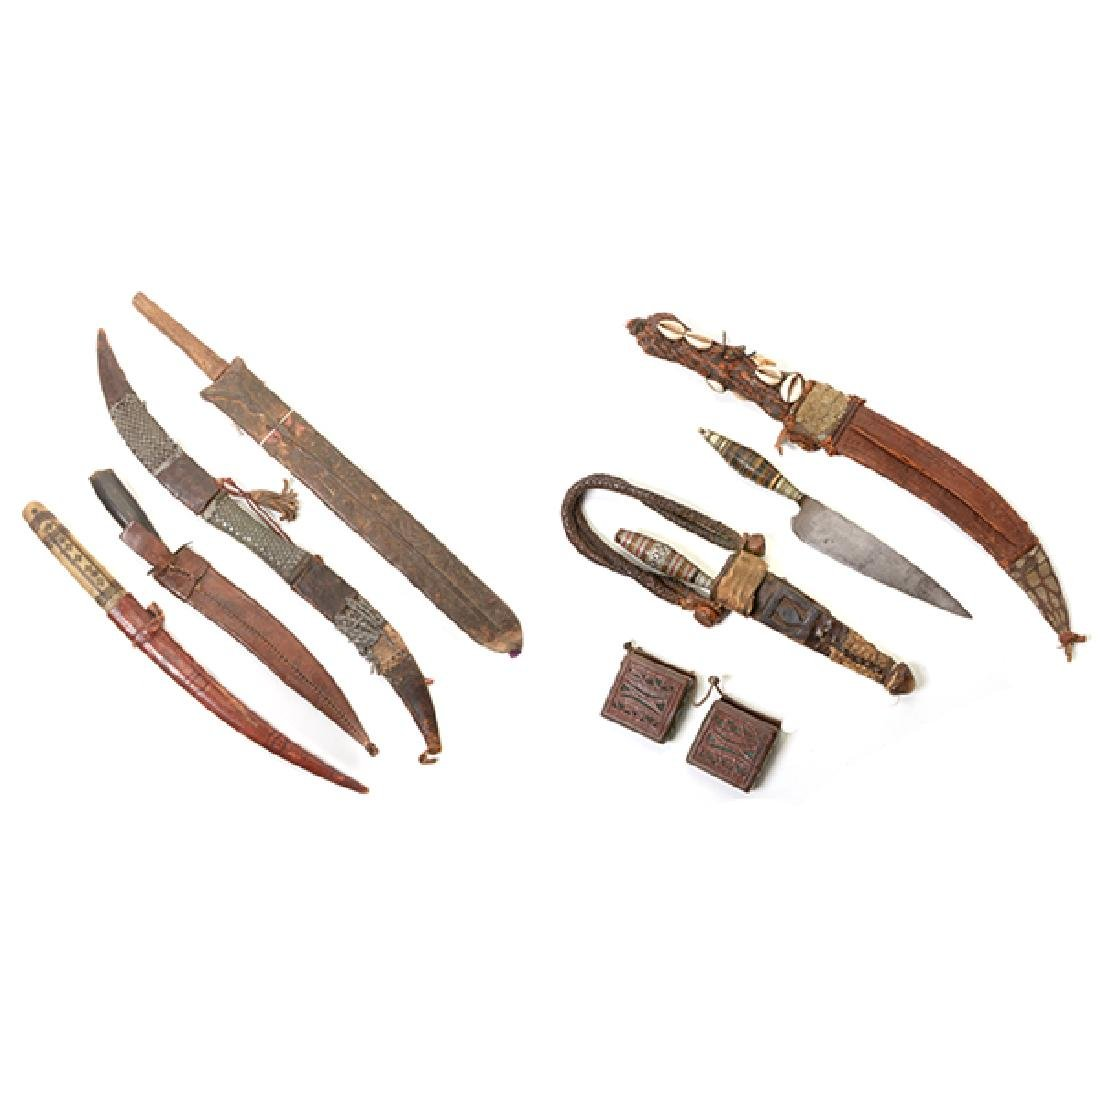 Six Handmade Daggers and One Machete